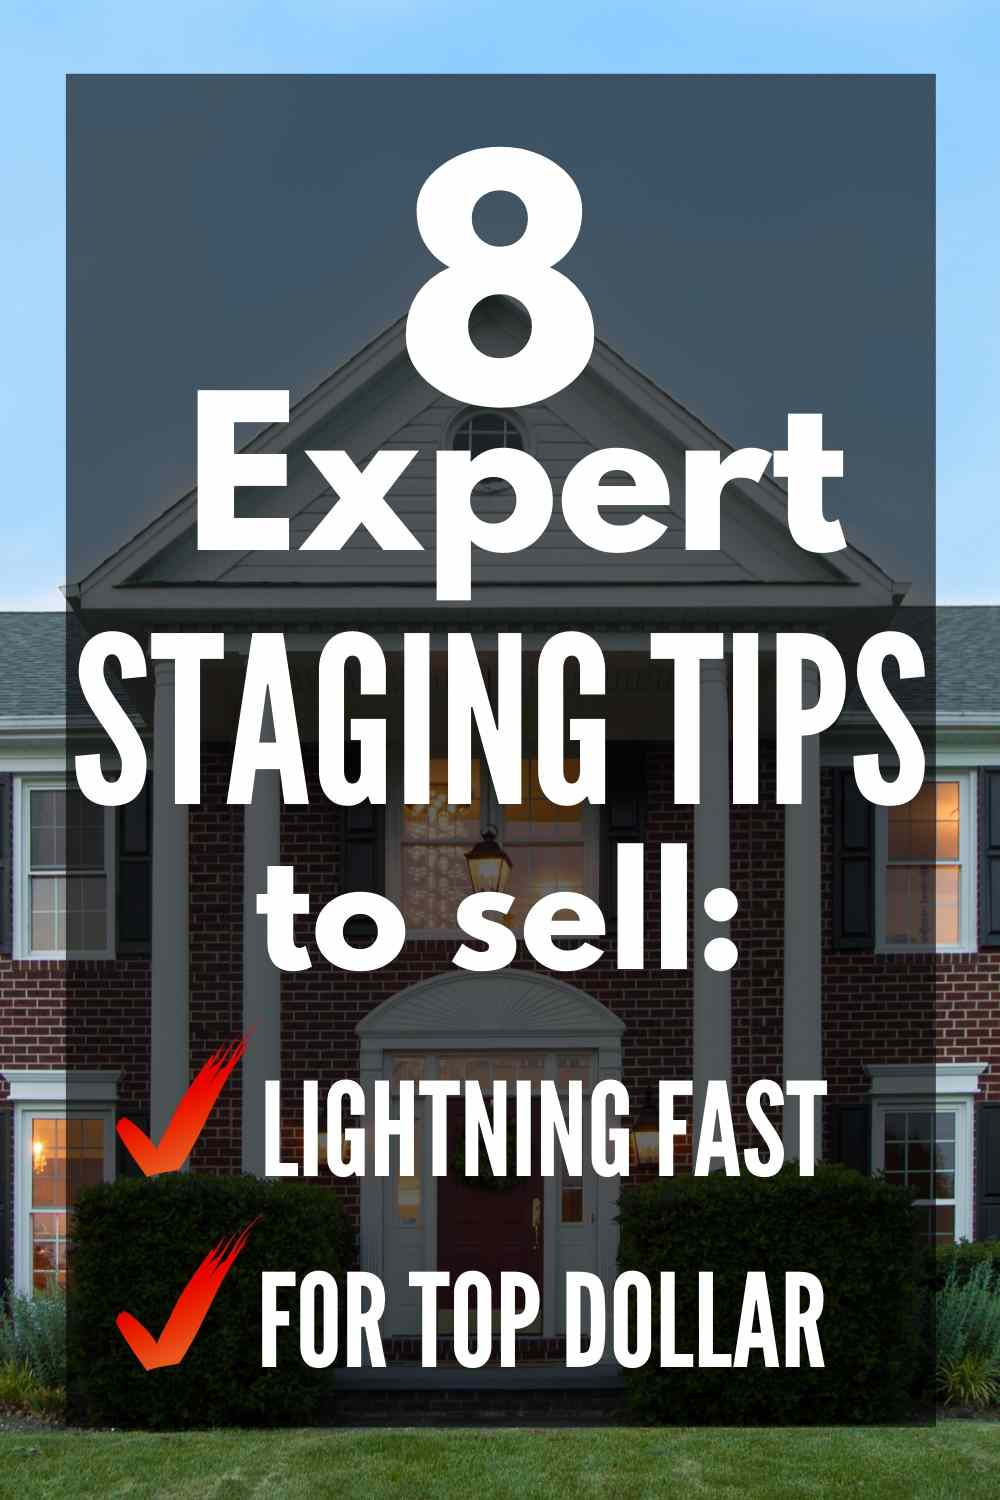 8 expert house staging tips to help you sell your home lightning-fast and maximize your profit!